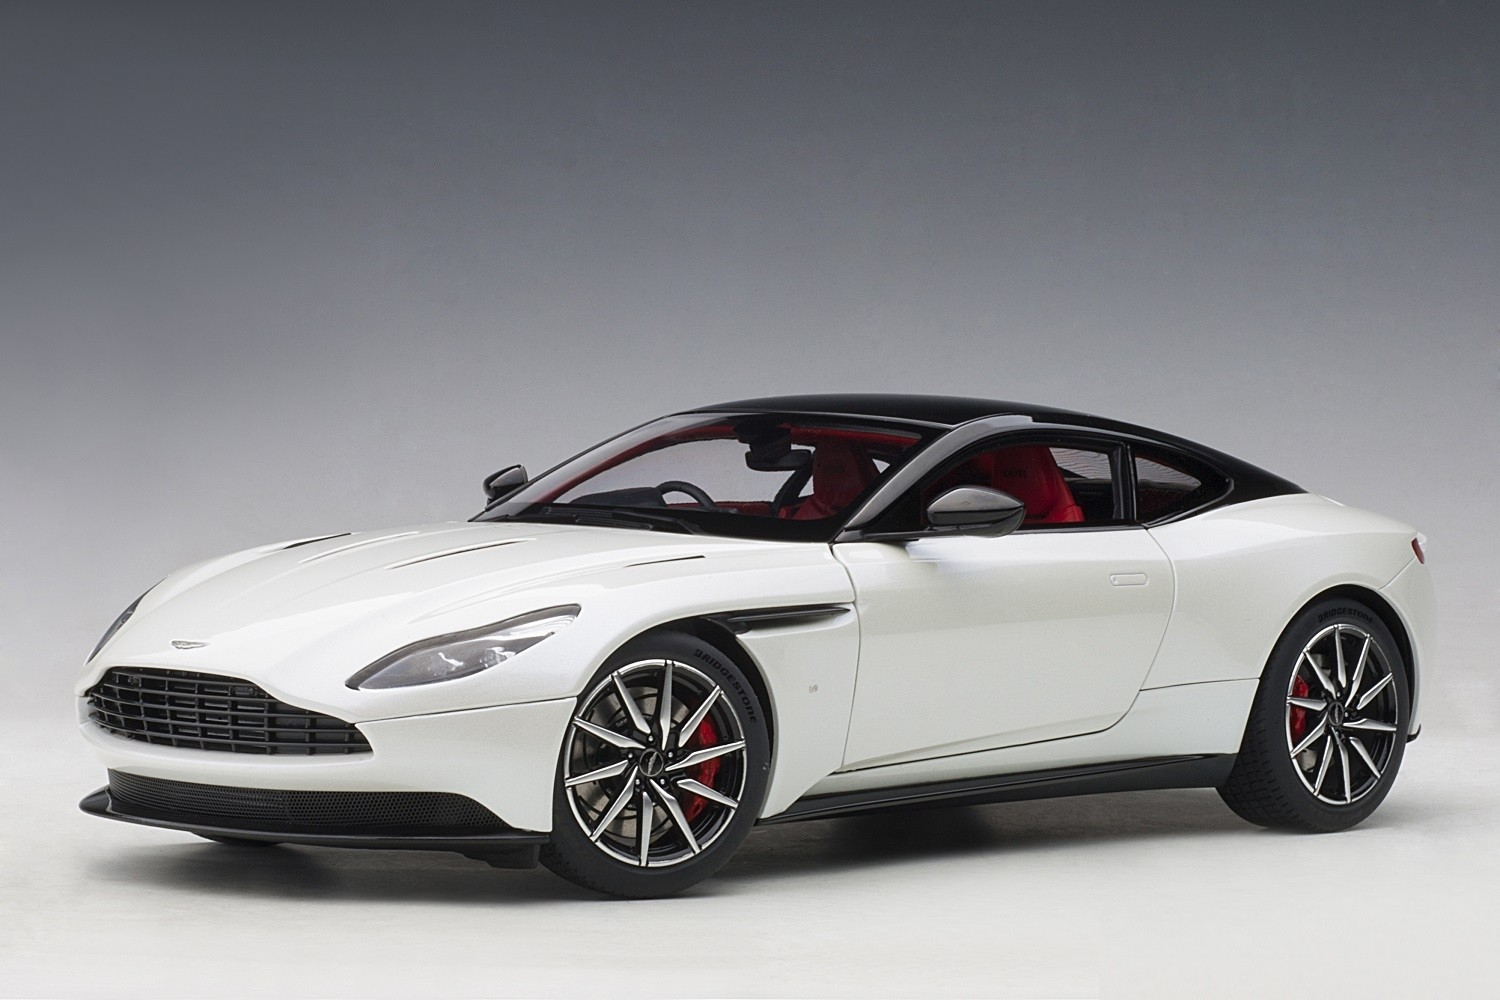 White Aston Martin Db11 Morning Frost White Autoart 70266 Scale 1 18 Au70266 Eztoys Diecast Models And Collectibles